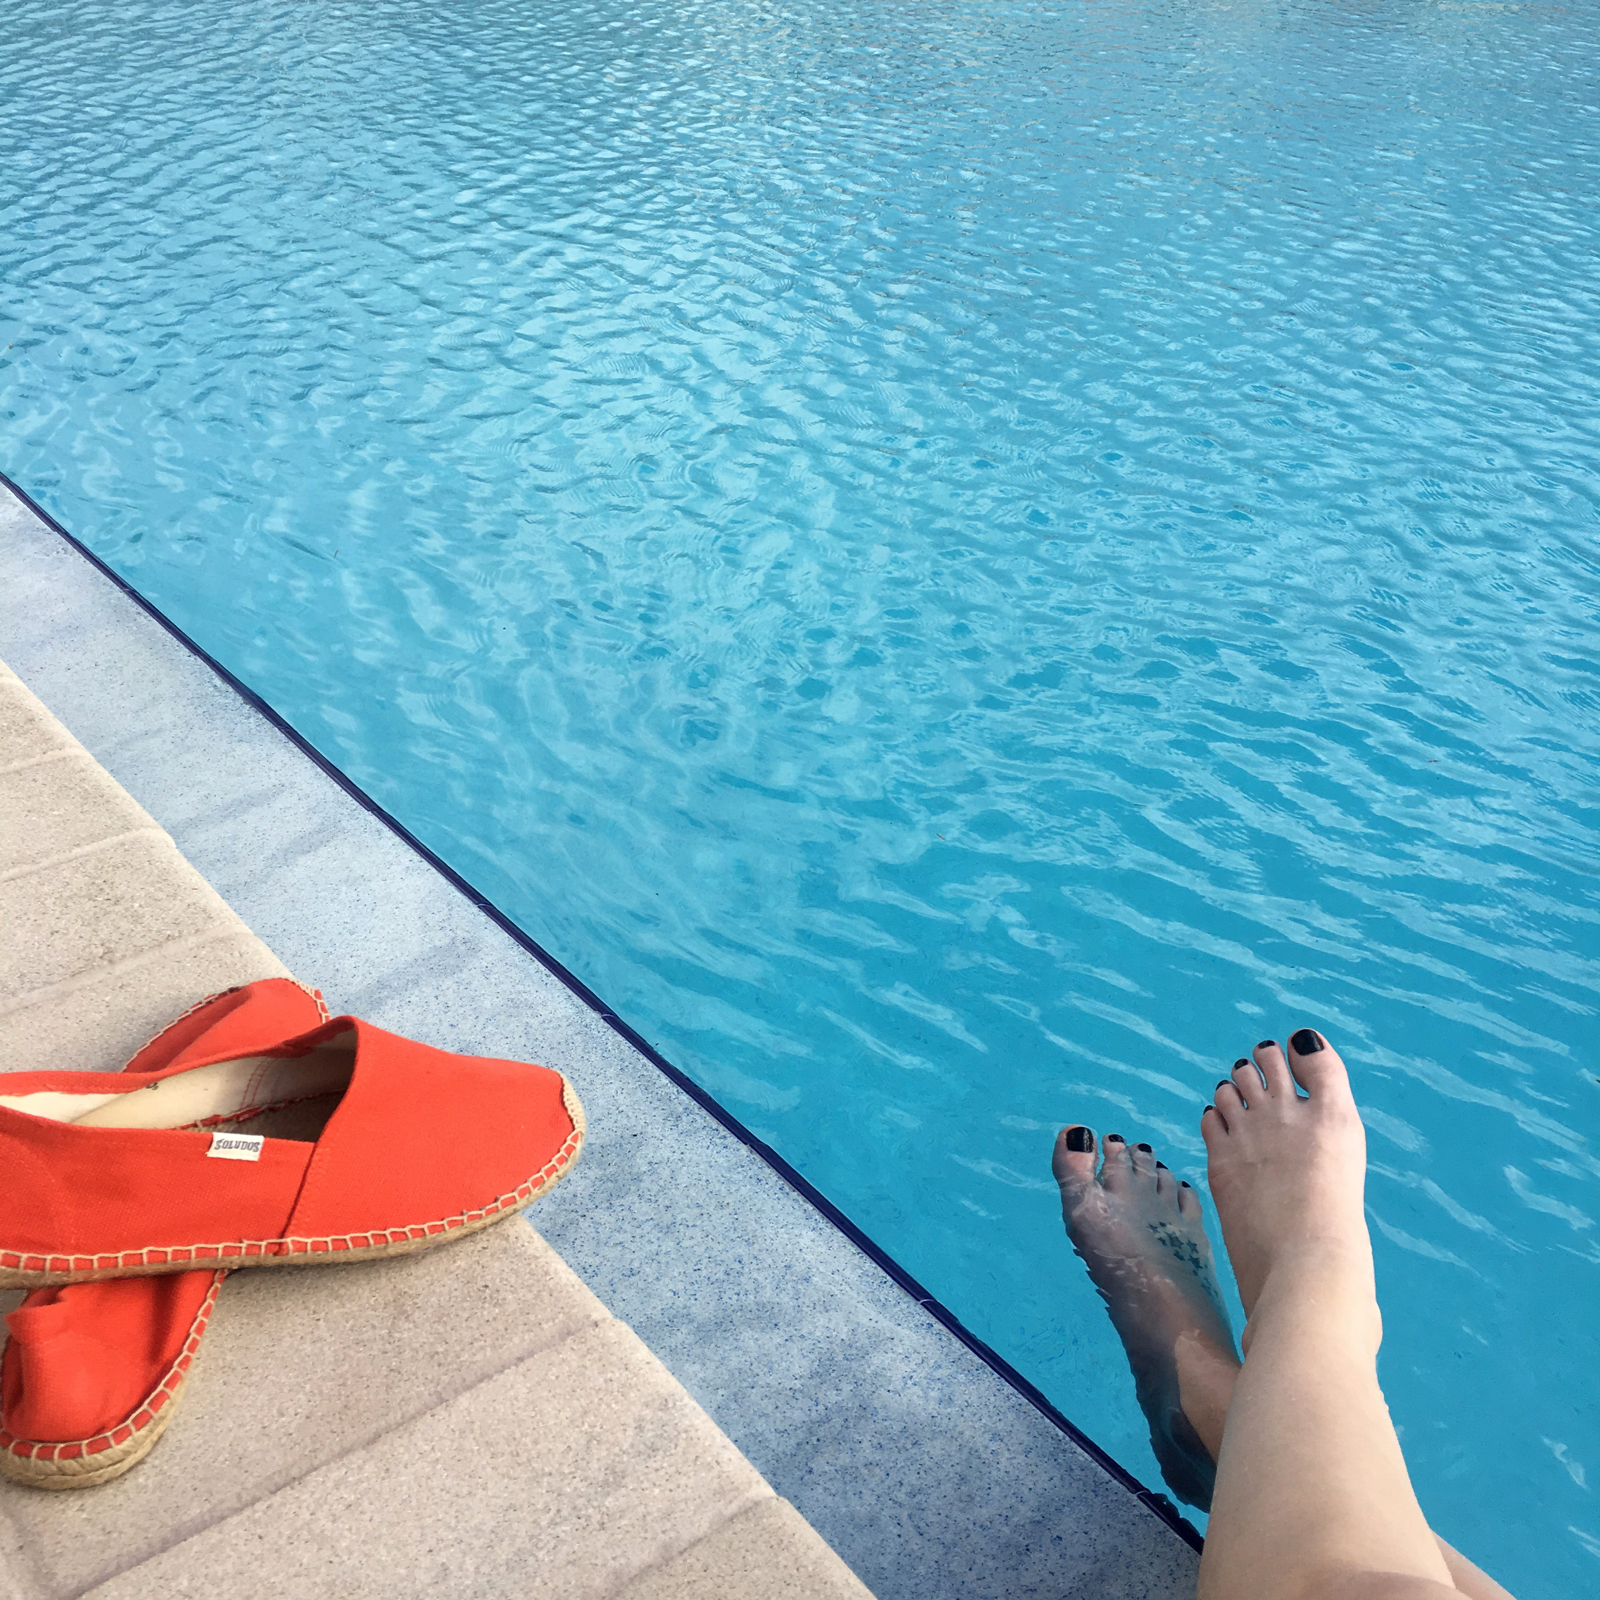 Feet by a poolside with red shoes near the edge